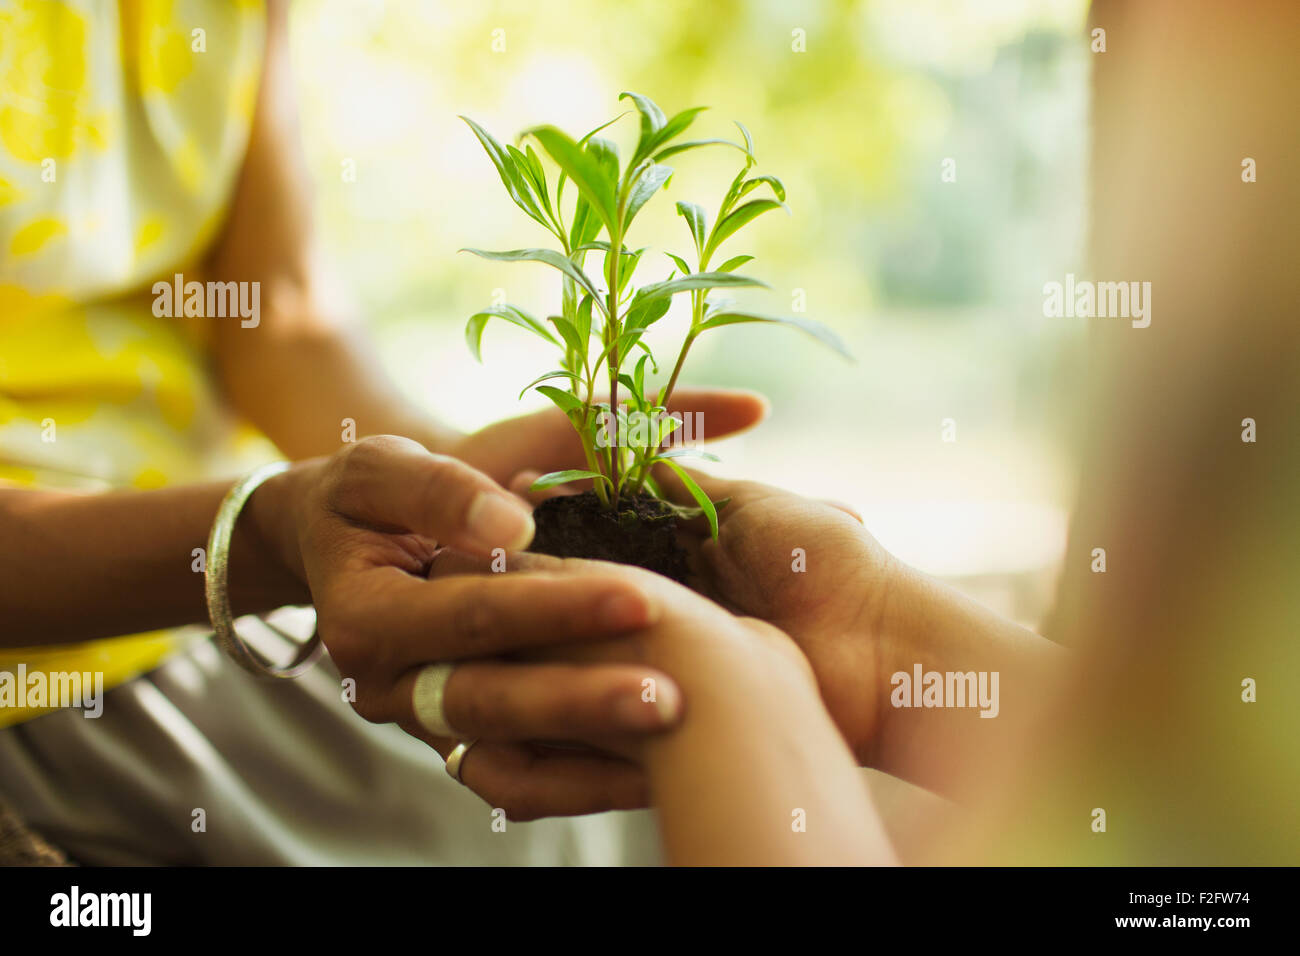 Close up mother and son cupping seedling - Stock Image